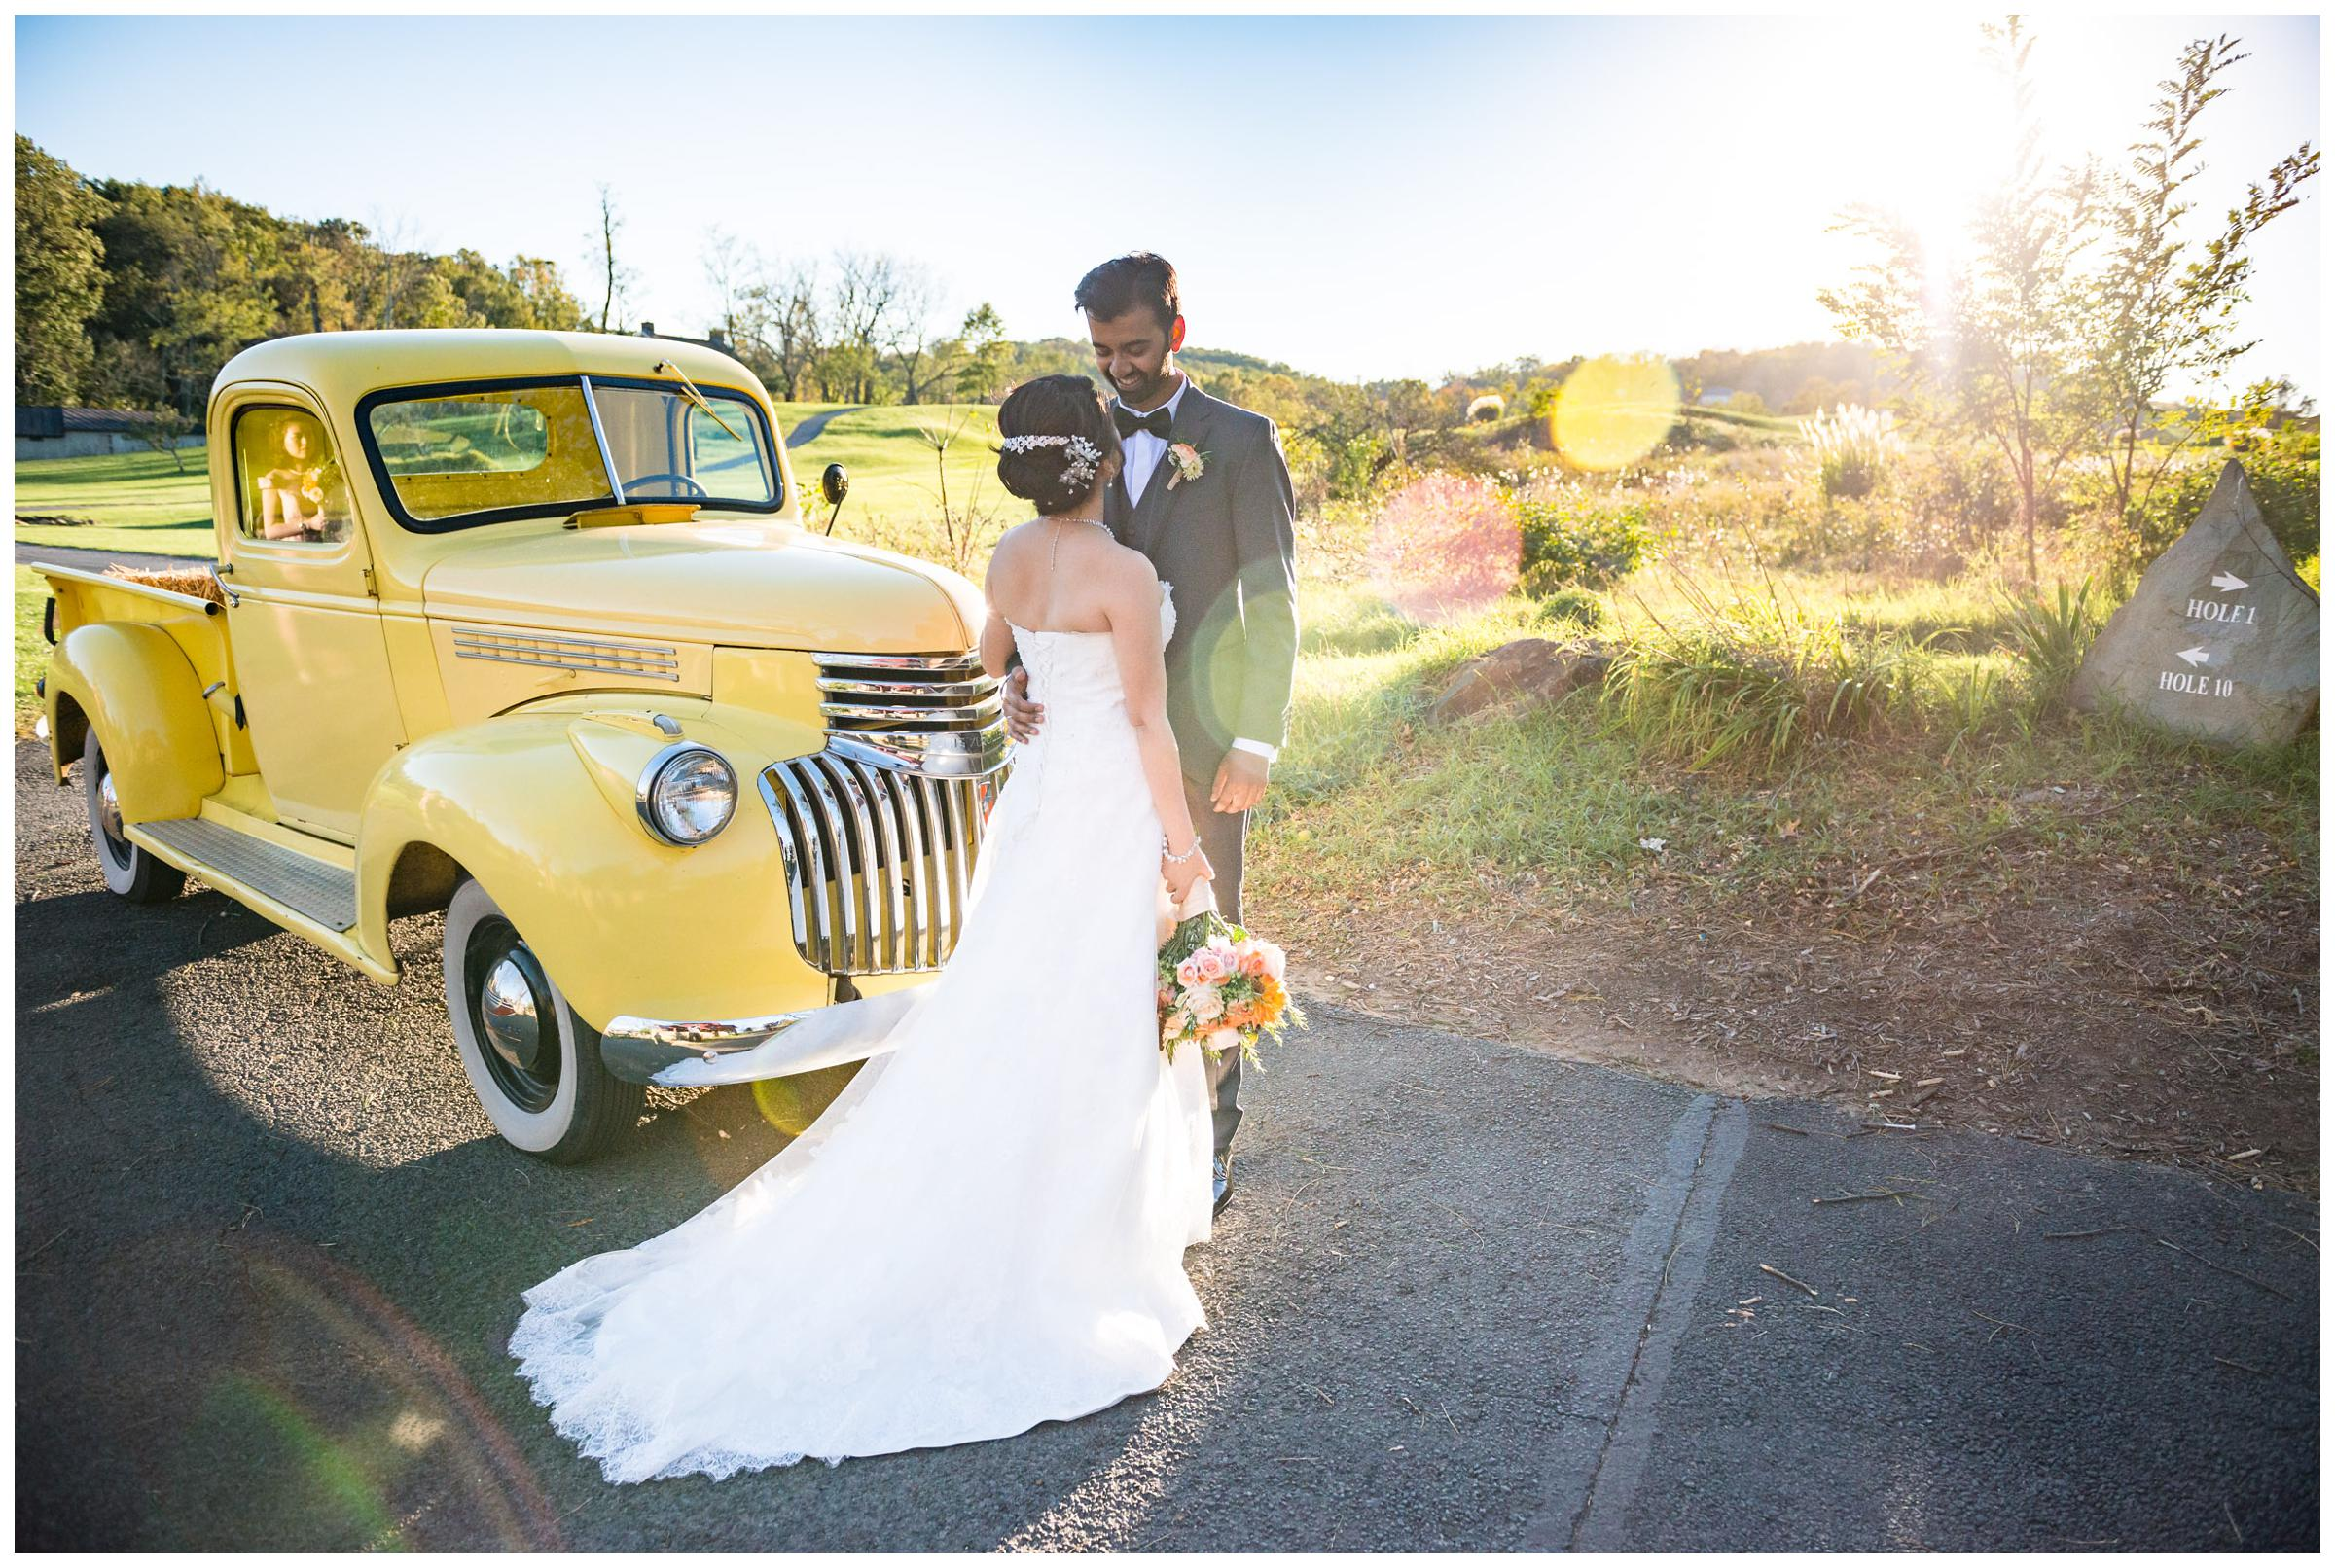 Portrait of bride and groom with vintage yellow truck during wedding at Stoneleigh Golf Club in Round Hill, Virginia.